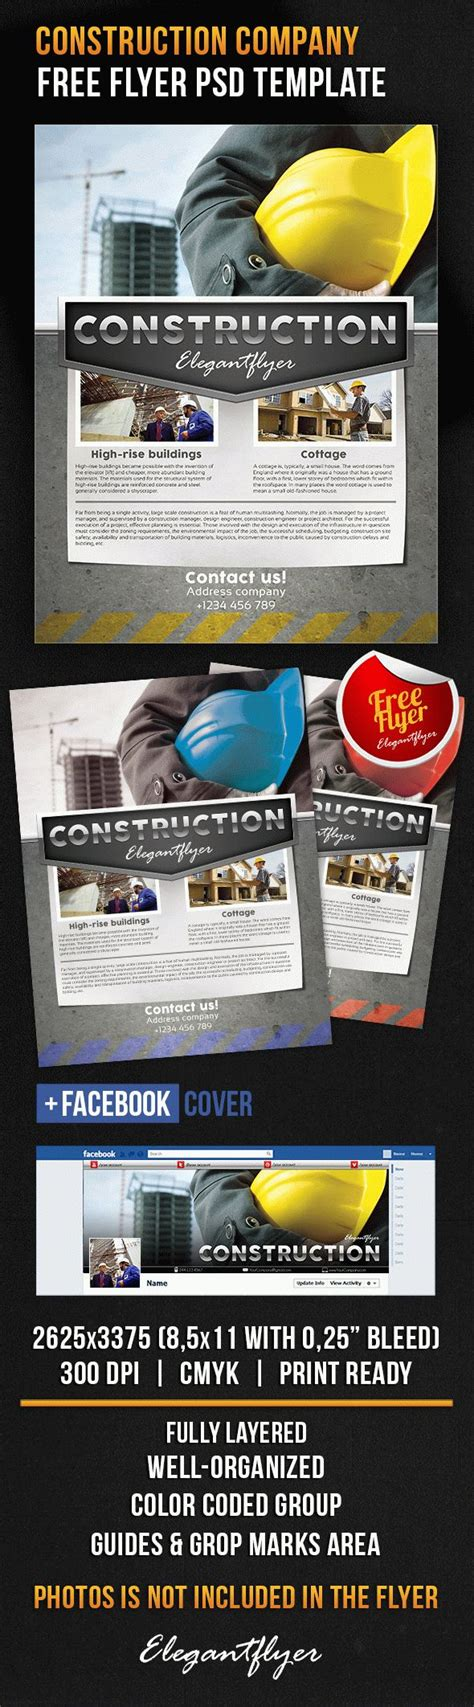 Free Construction Company Facebook Cover Photoshop Flyer Template Flyershitter Com Construction Company Template Free